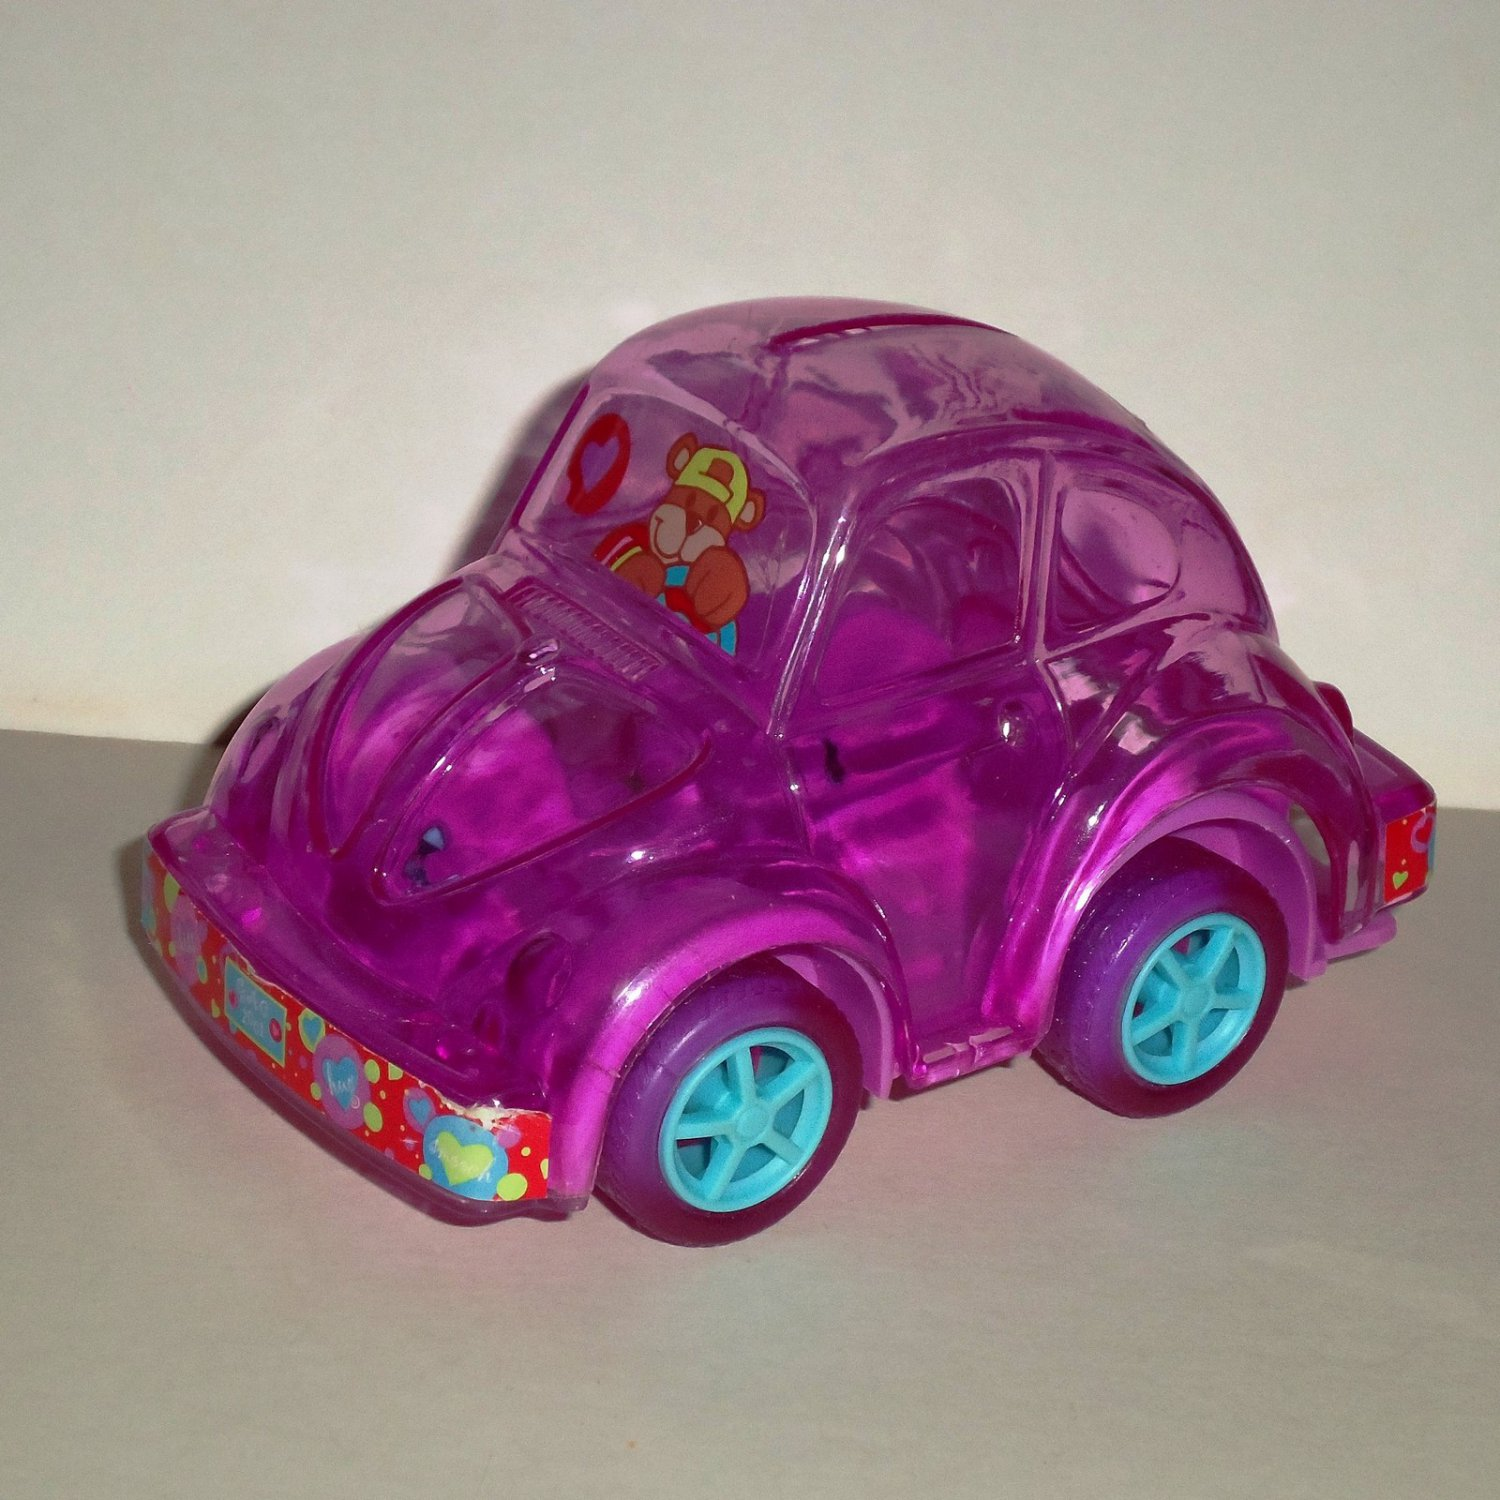 Volkswagen Beetle Pink Candy Holder Bank Toy Car VW Loose Used